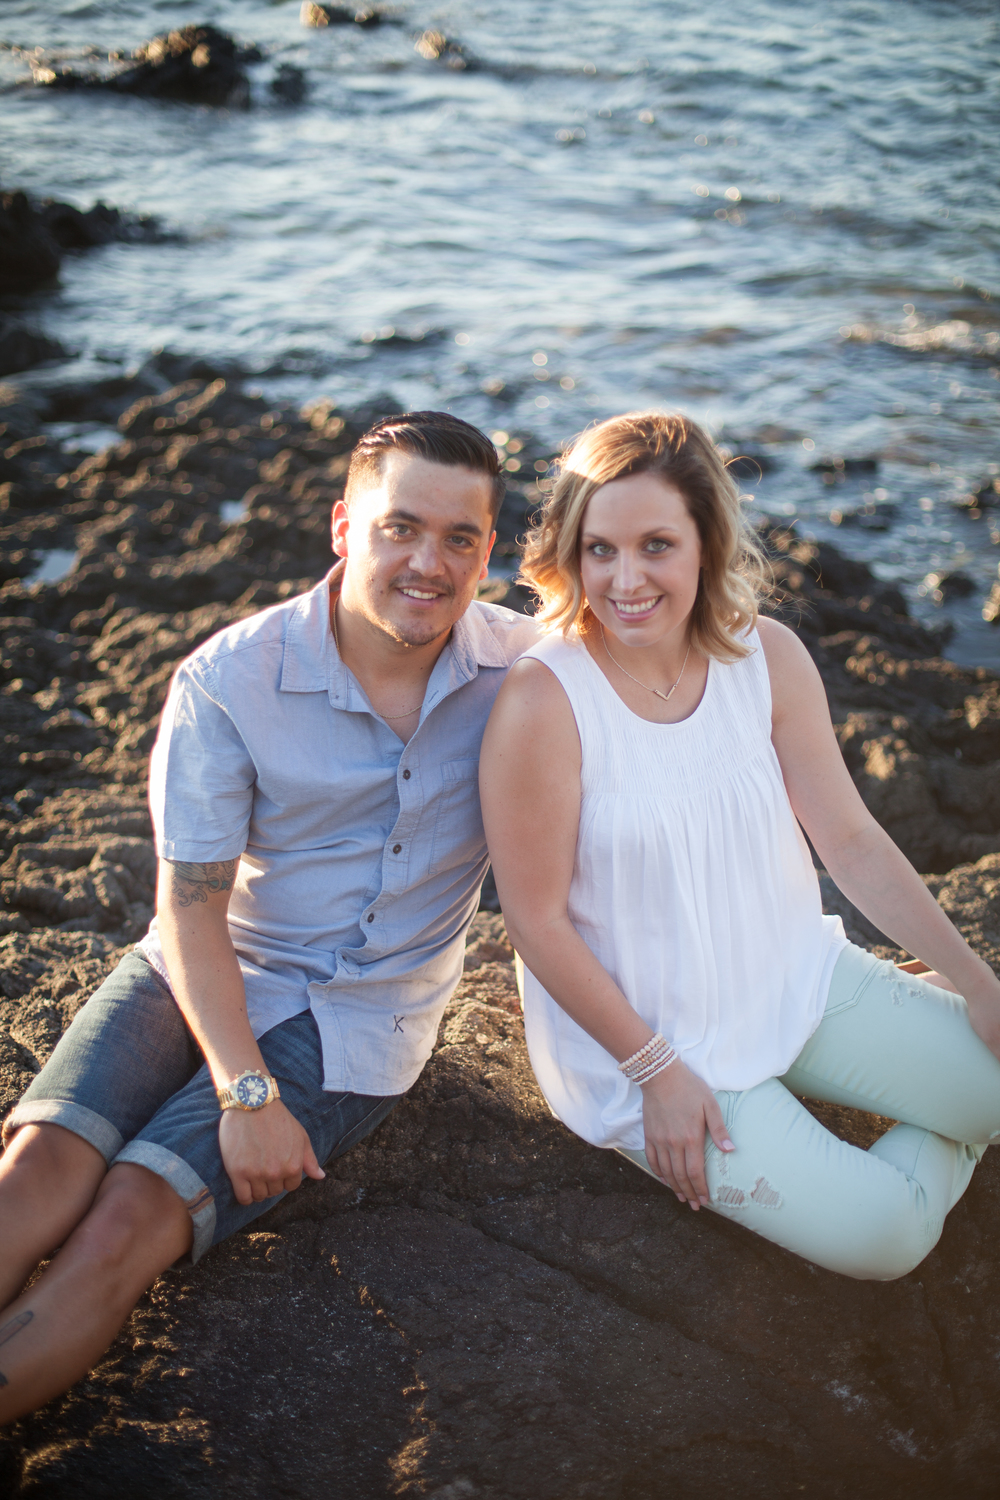 big island hawaii engagement photography 20150529182917-1.jpg